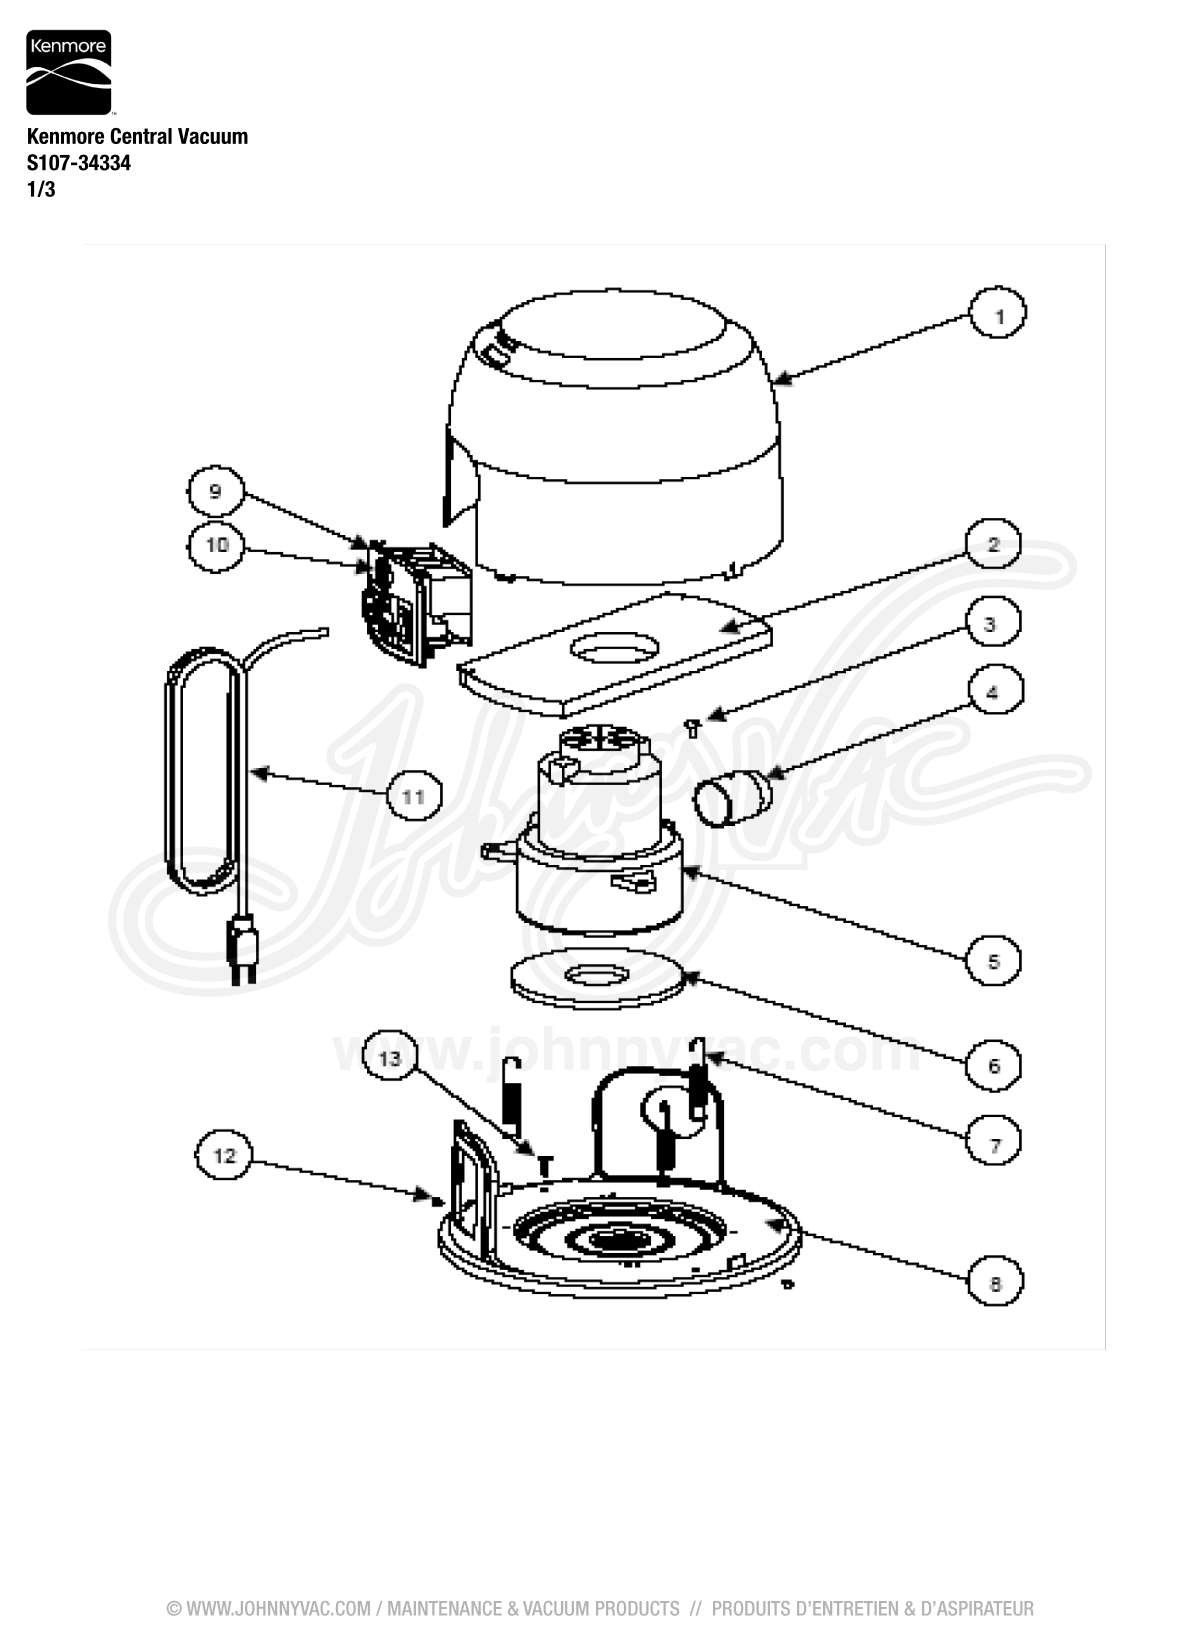 Kenmore Central Vacuum Wiring Diagram